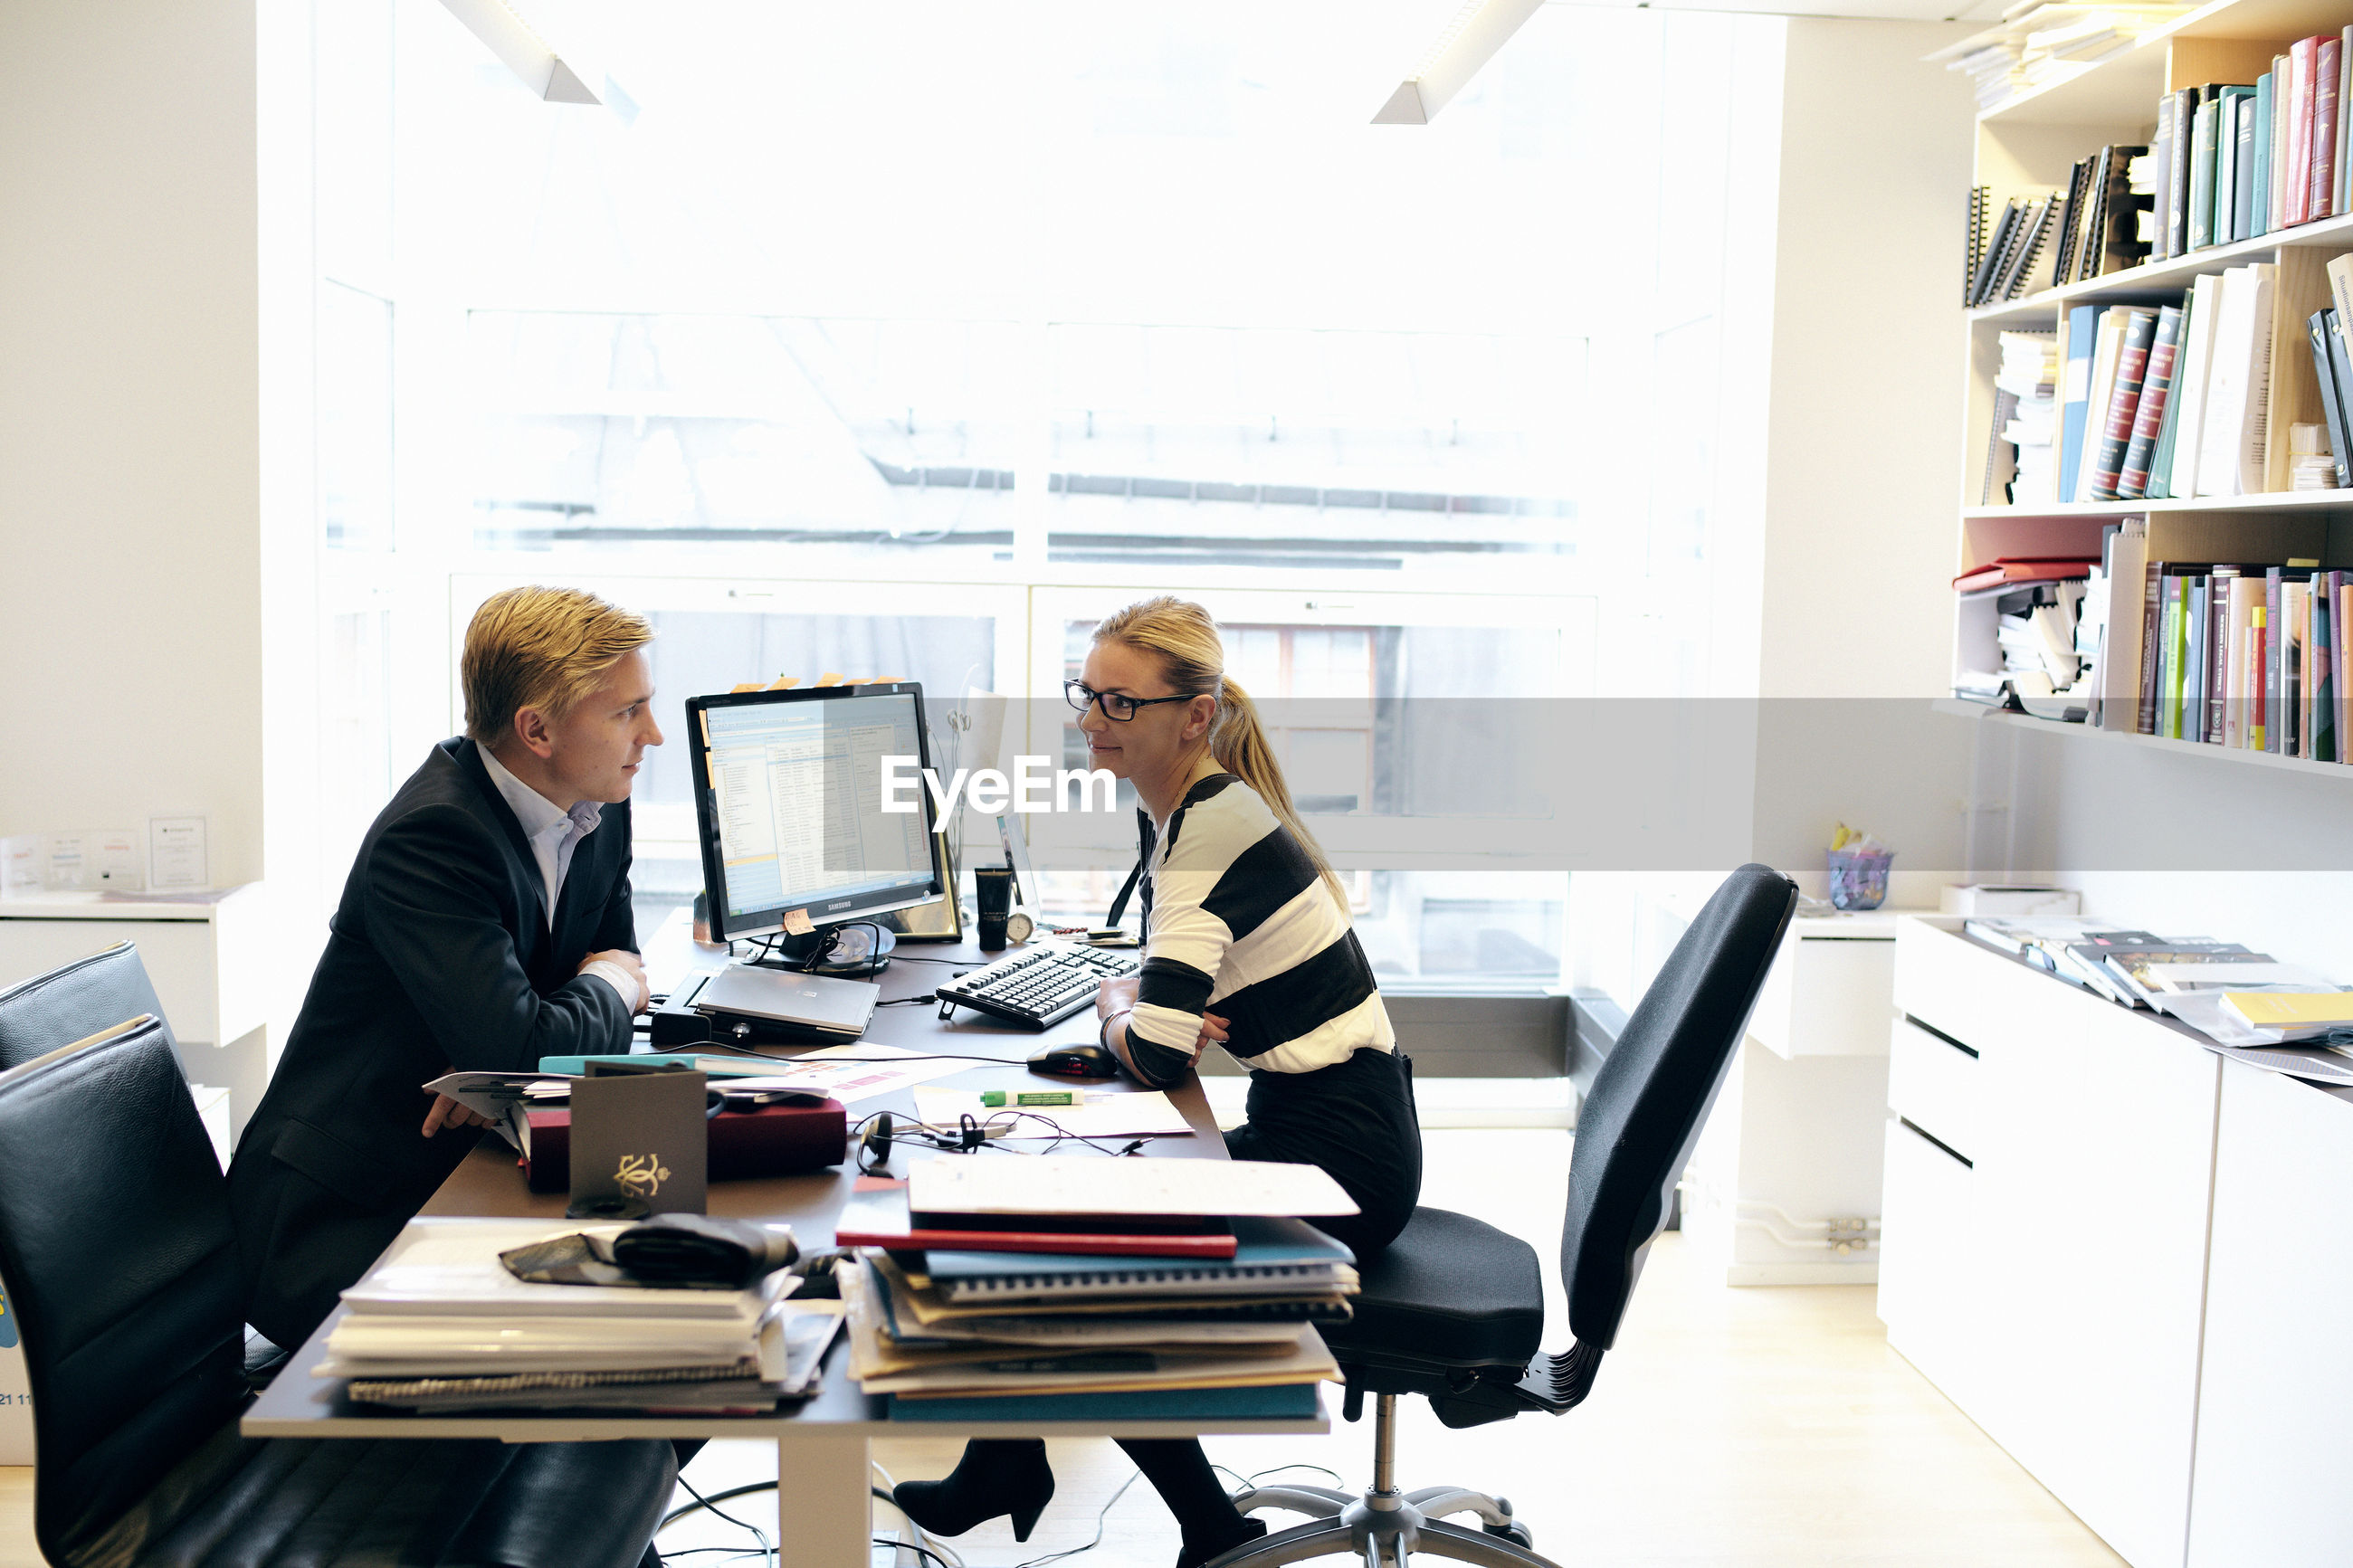 PEOPLE WORKING ON TABLE IN OFFICE